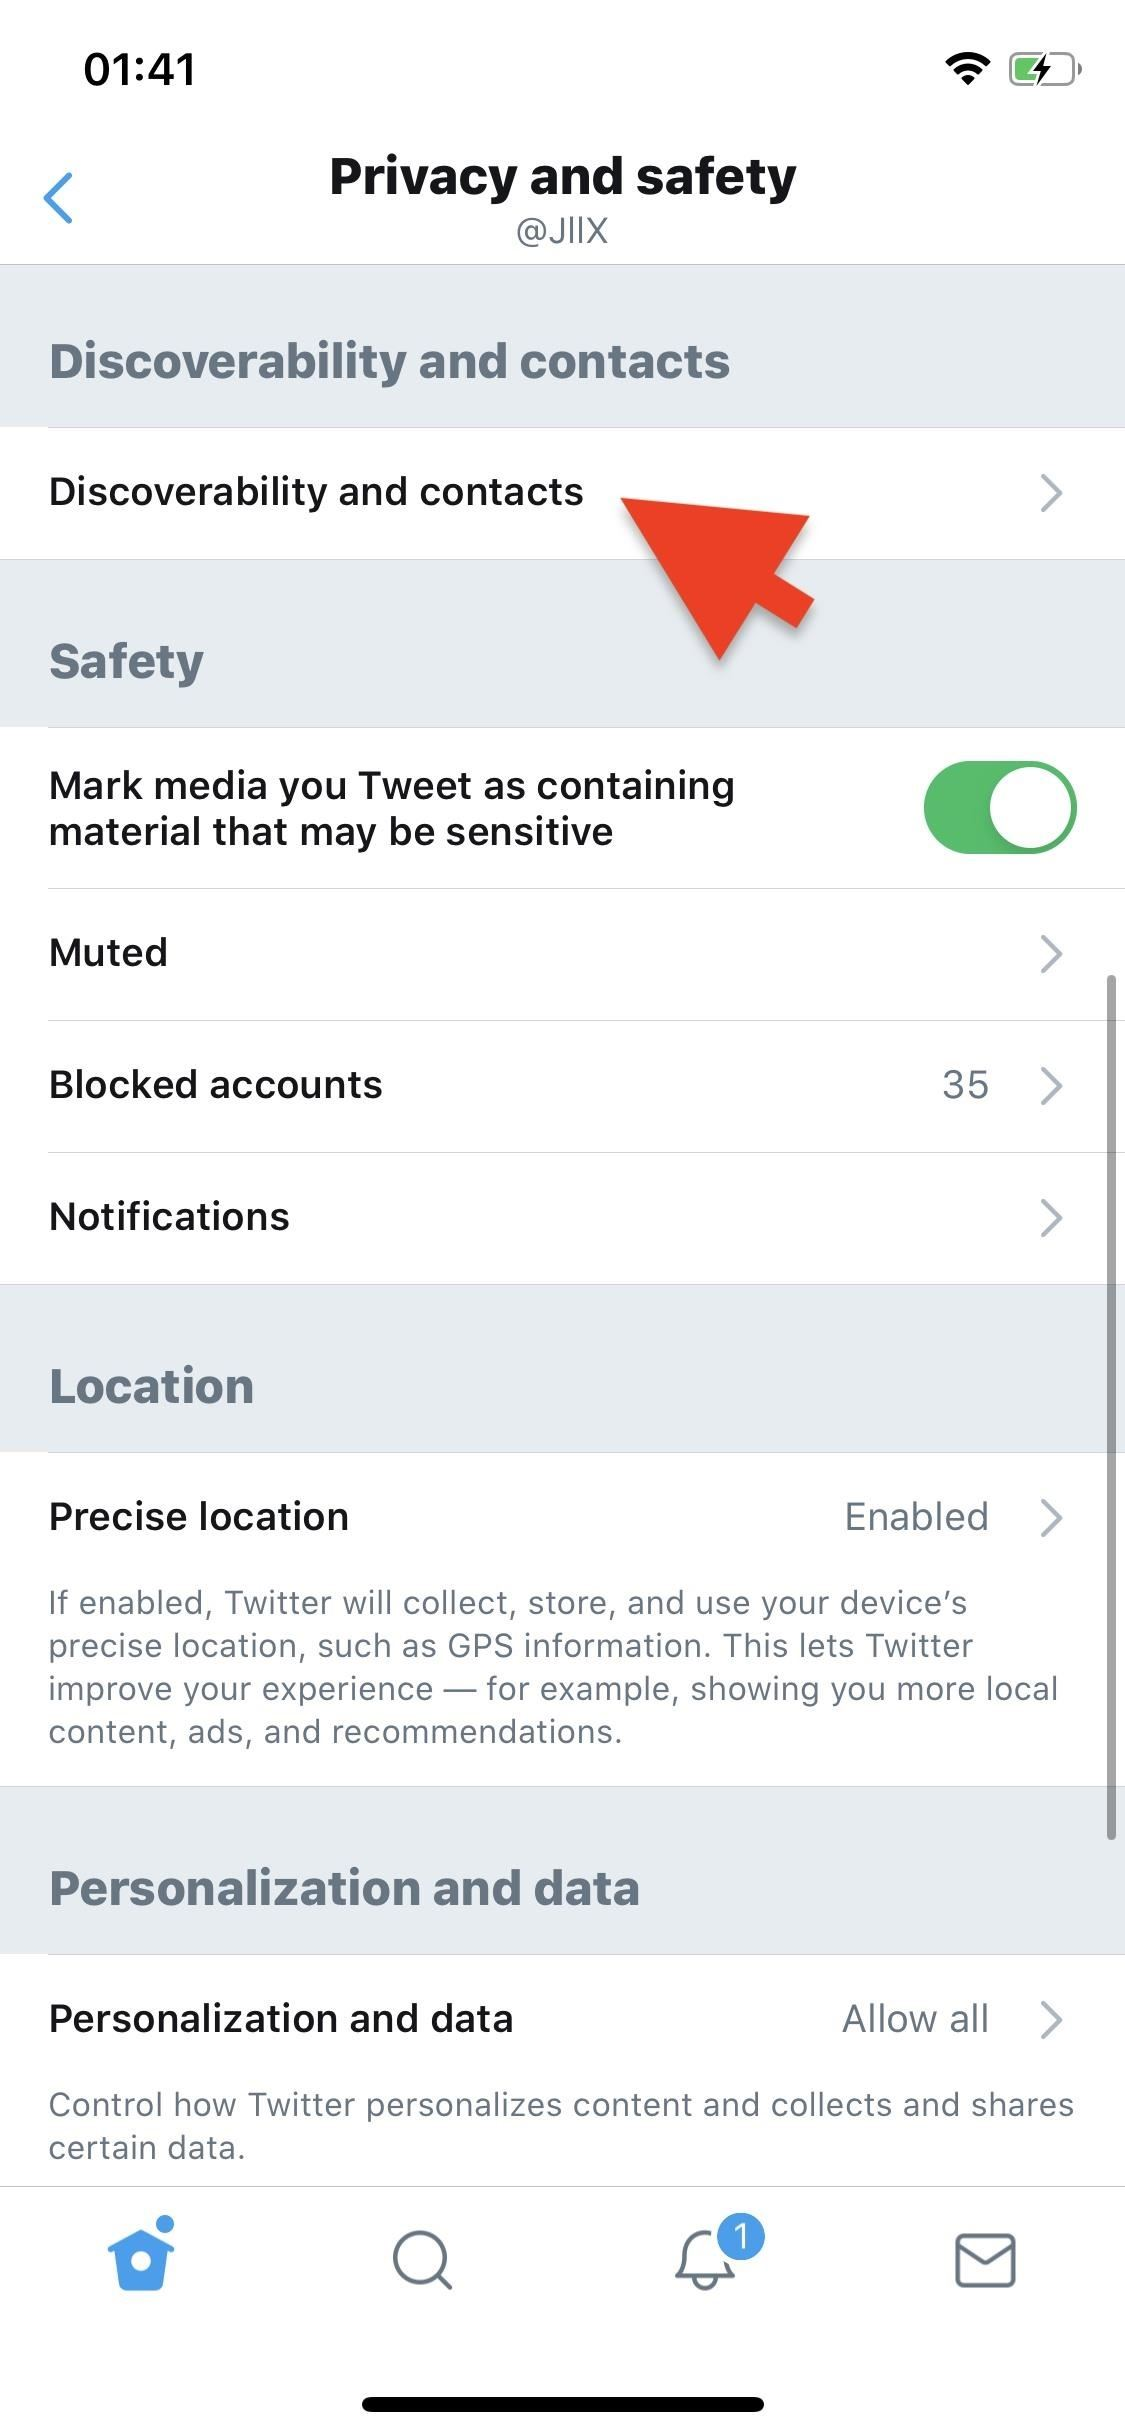 7 tips to improve your privacy and safety on Twitter